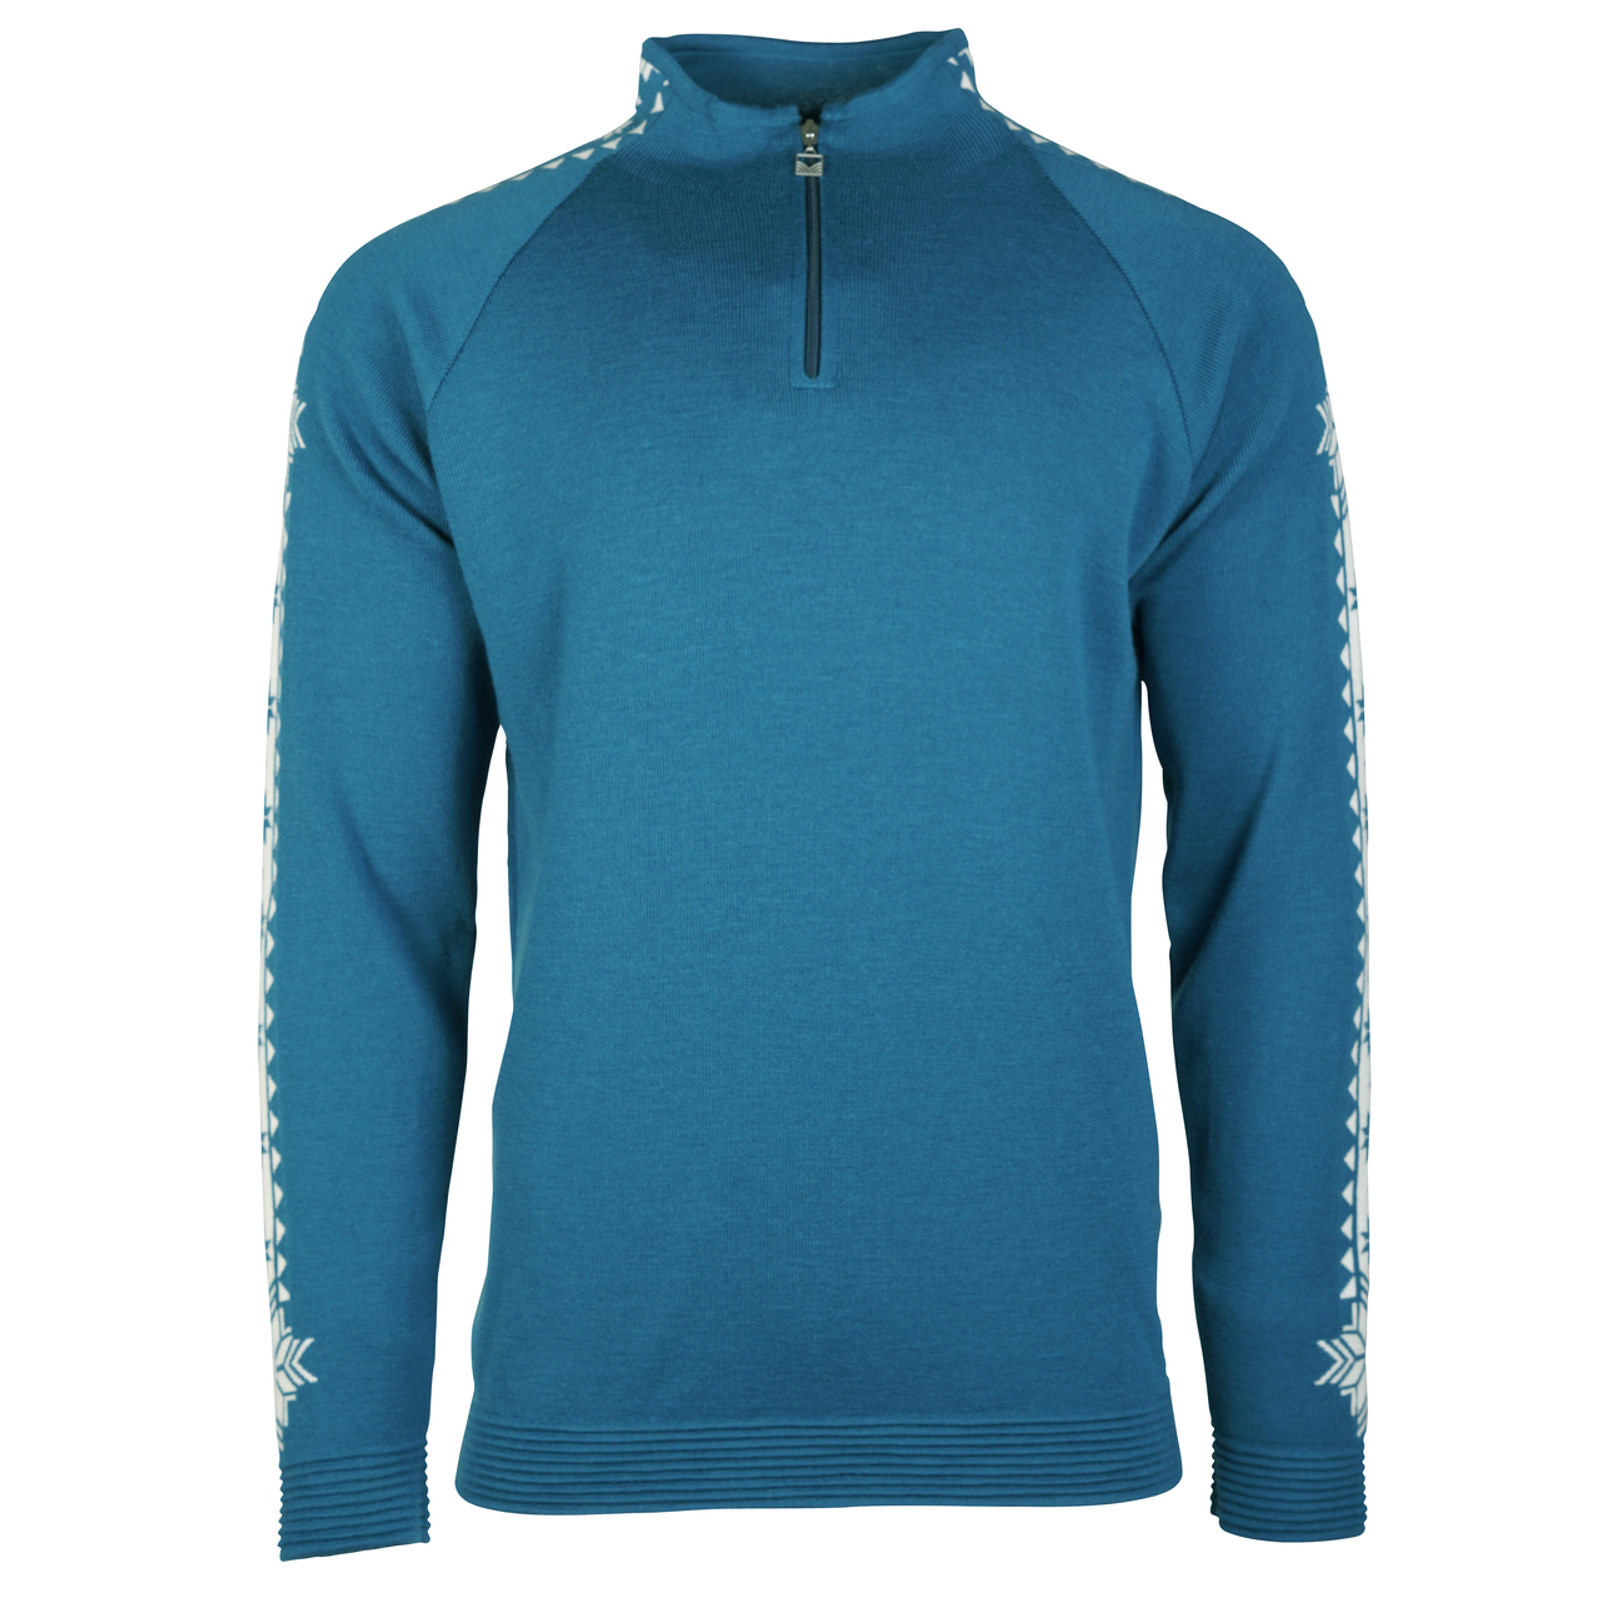 Dale of Norway Geilo Pullover, Mens, in Arctic Blue/Off White, 82321-G